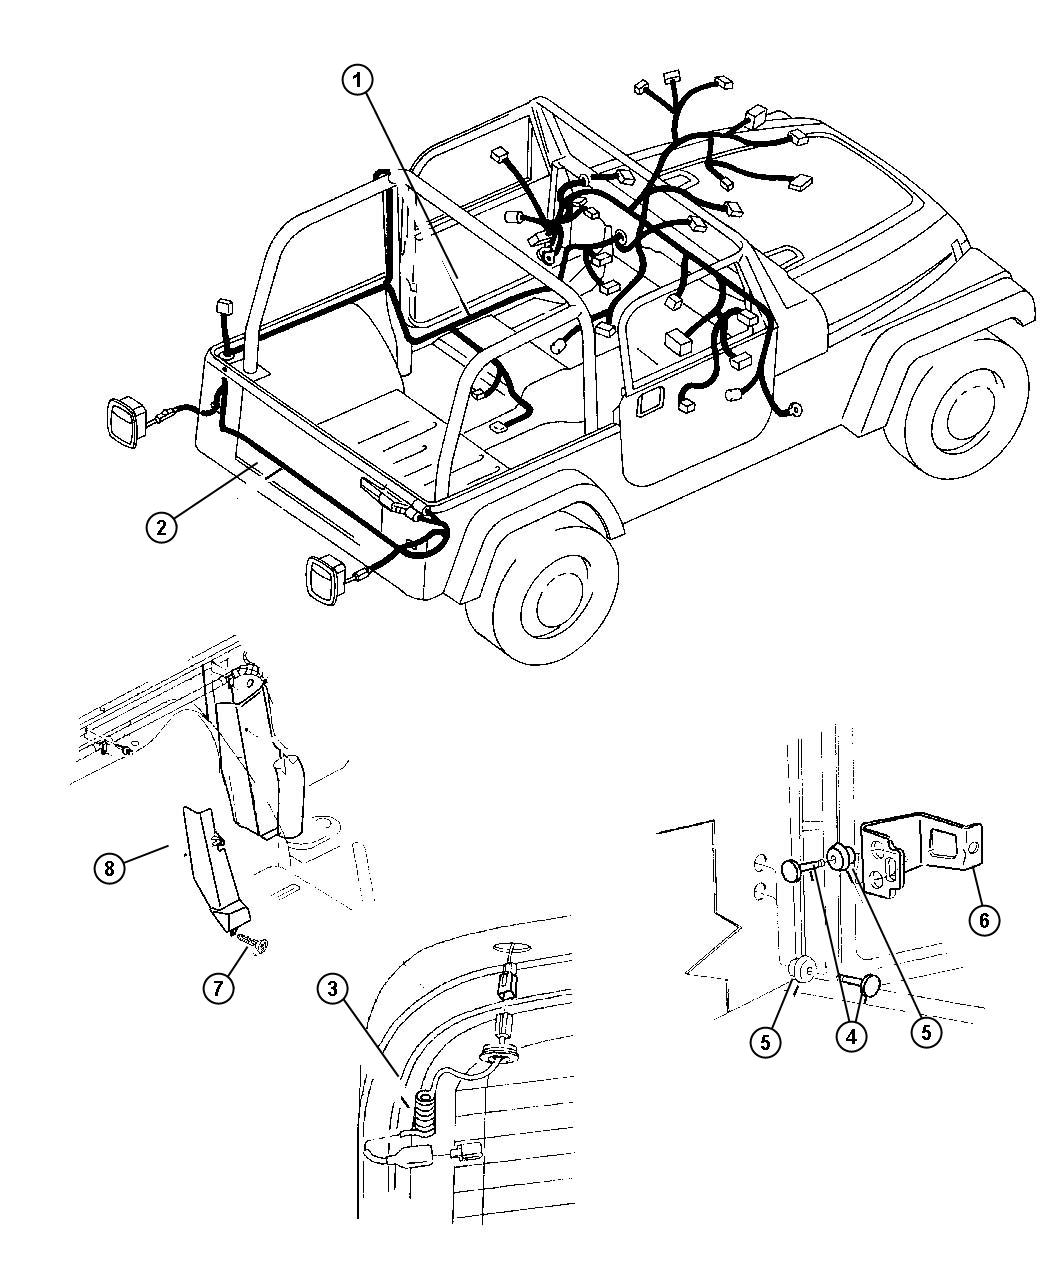 1975 Jeep Cj5 Wiring Diagram. Jeep. Wiring Diagram Gallery